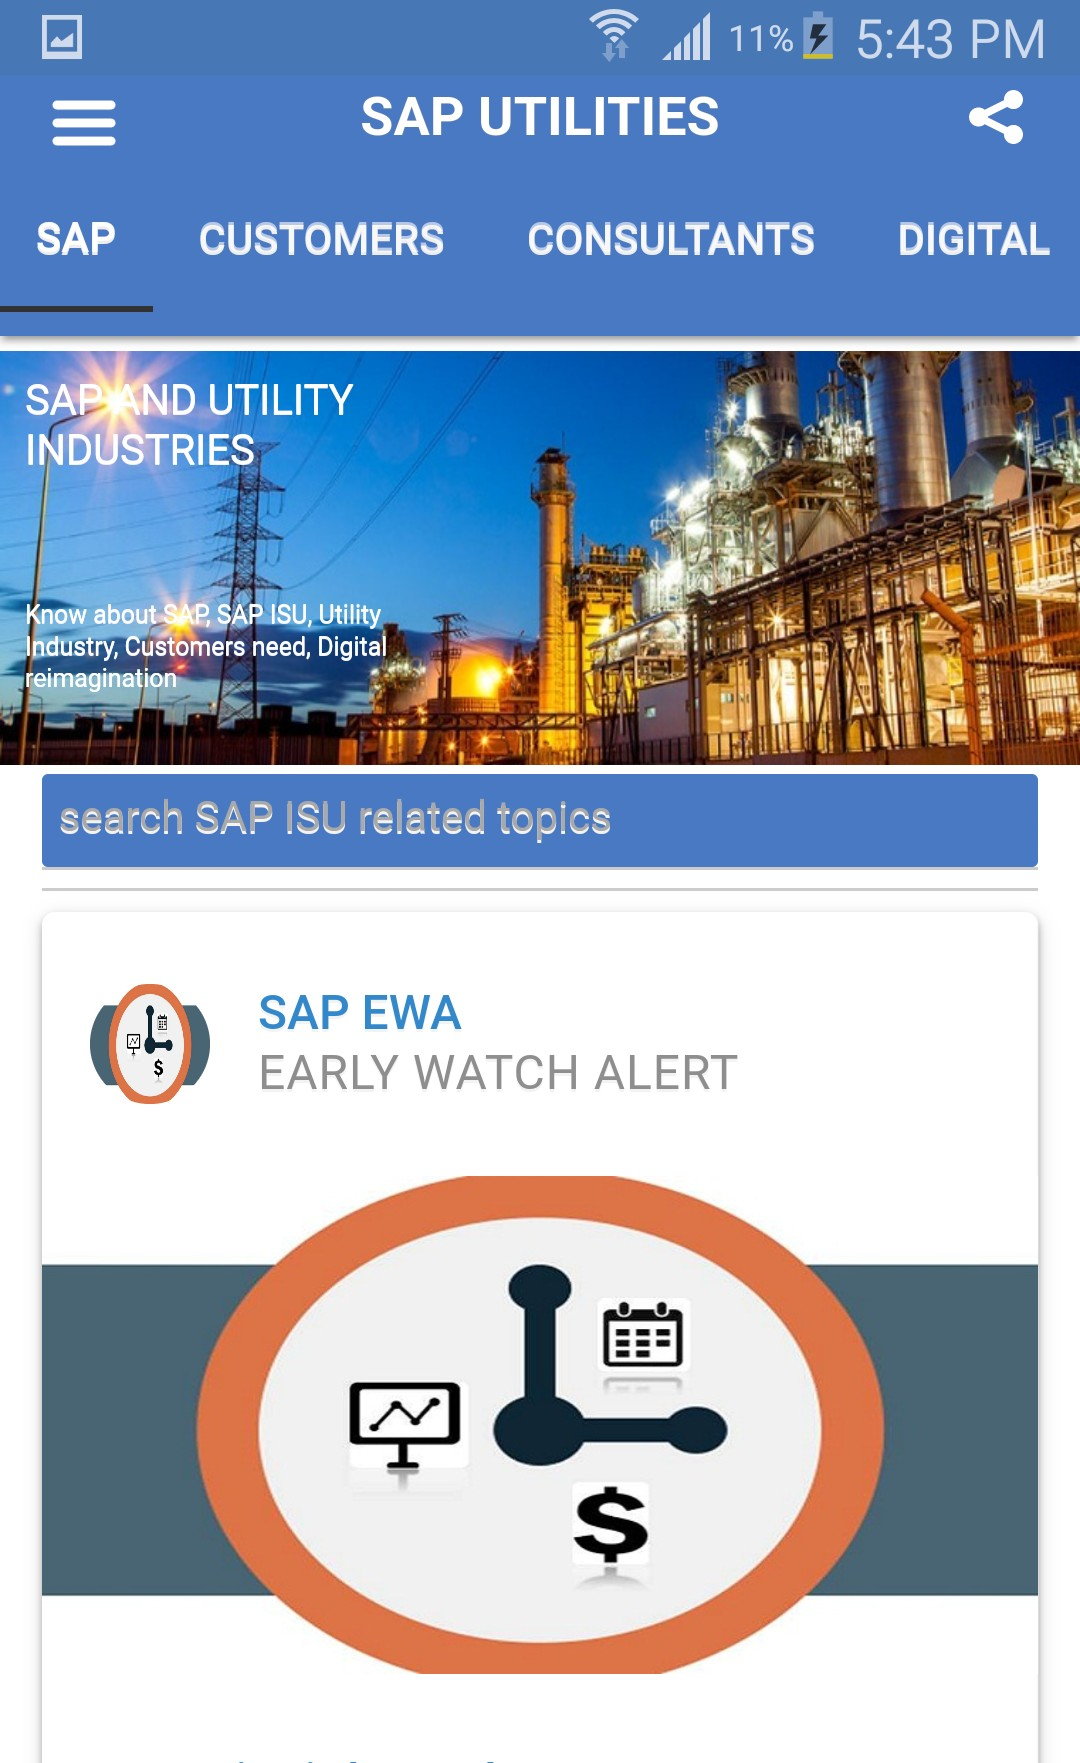 SAP Utility Digital